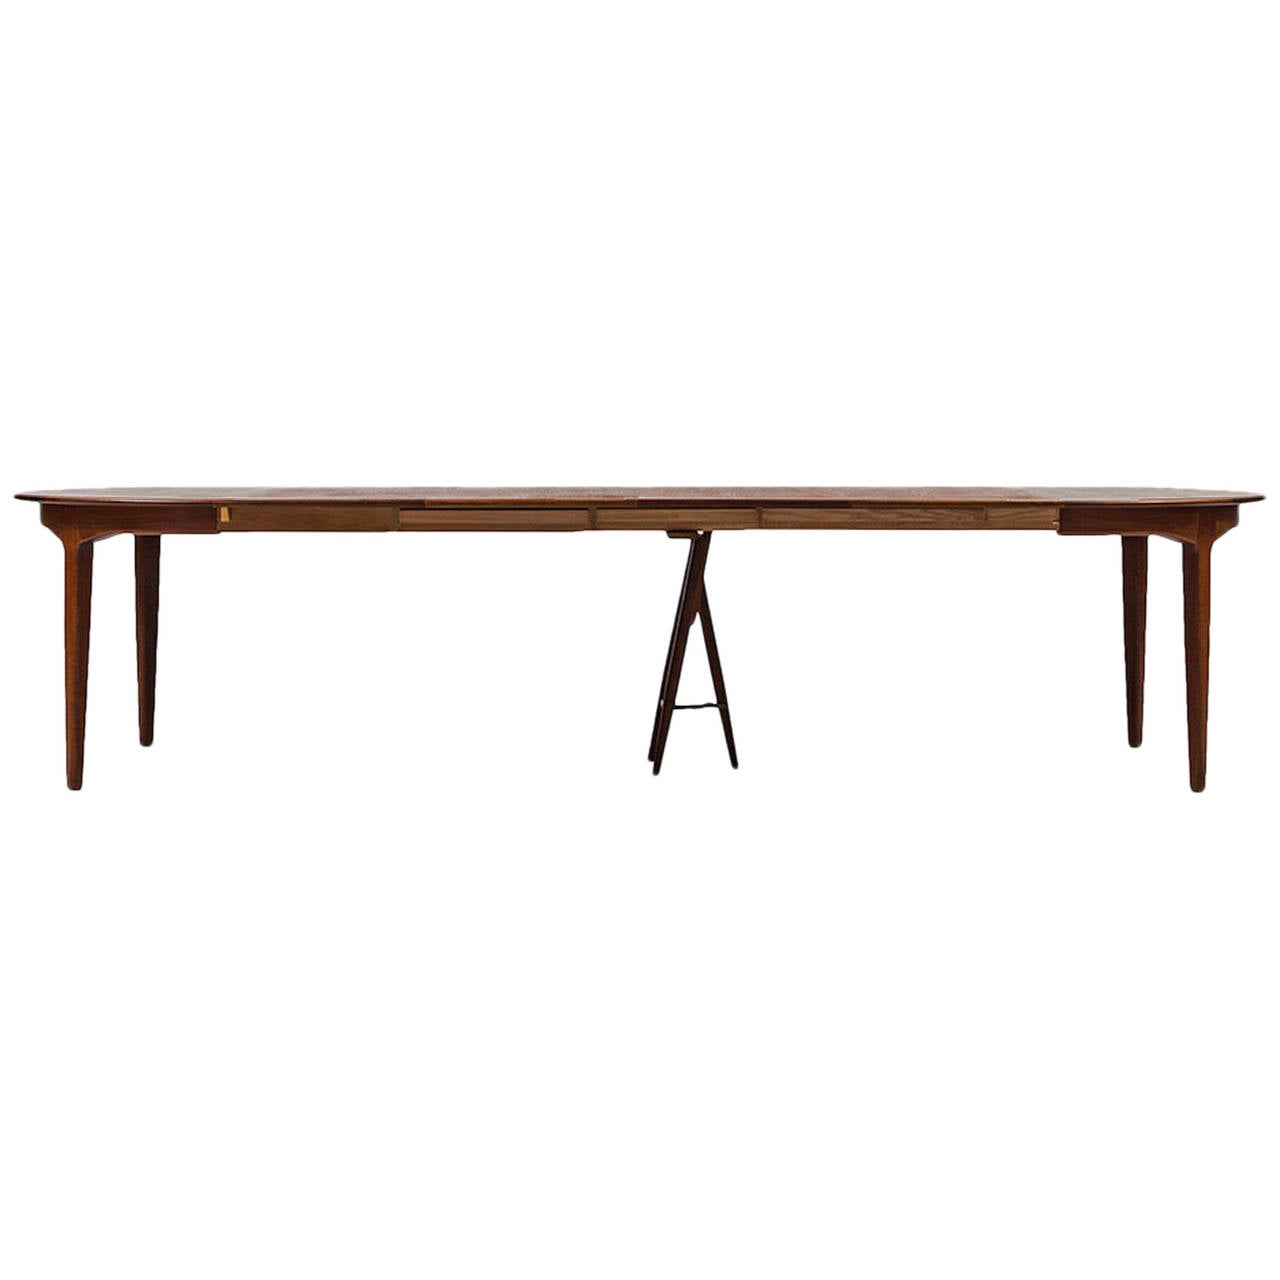 Henning Kjærnulf Dining Table Model 62 by Sorø Stolefabrik in Denmark